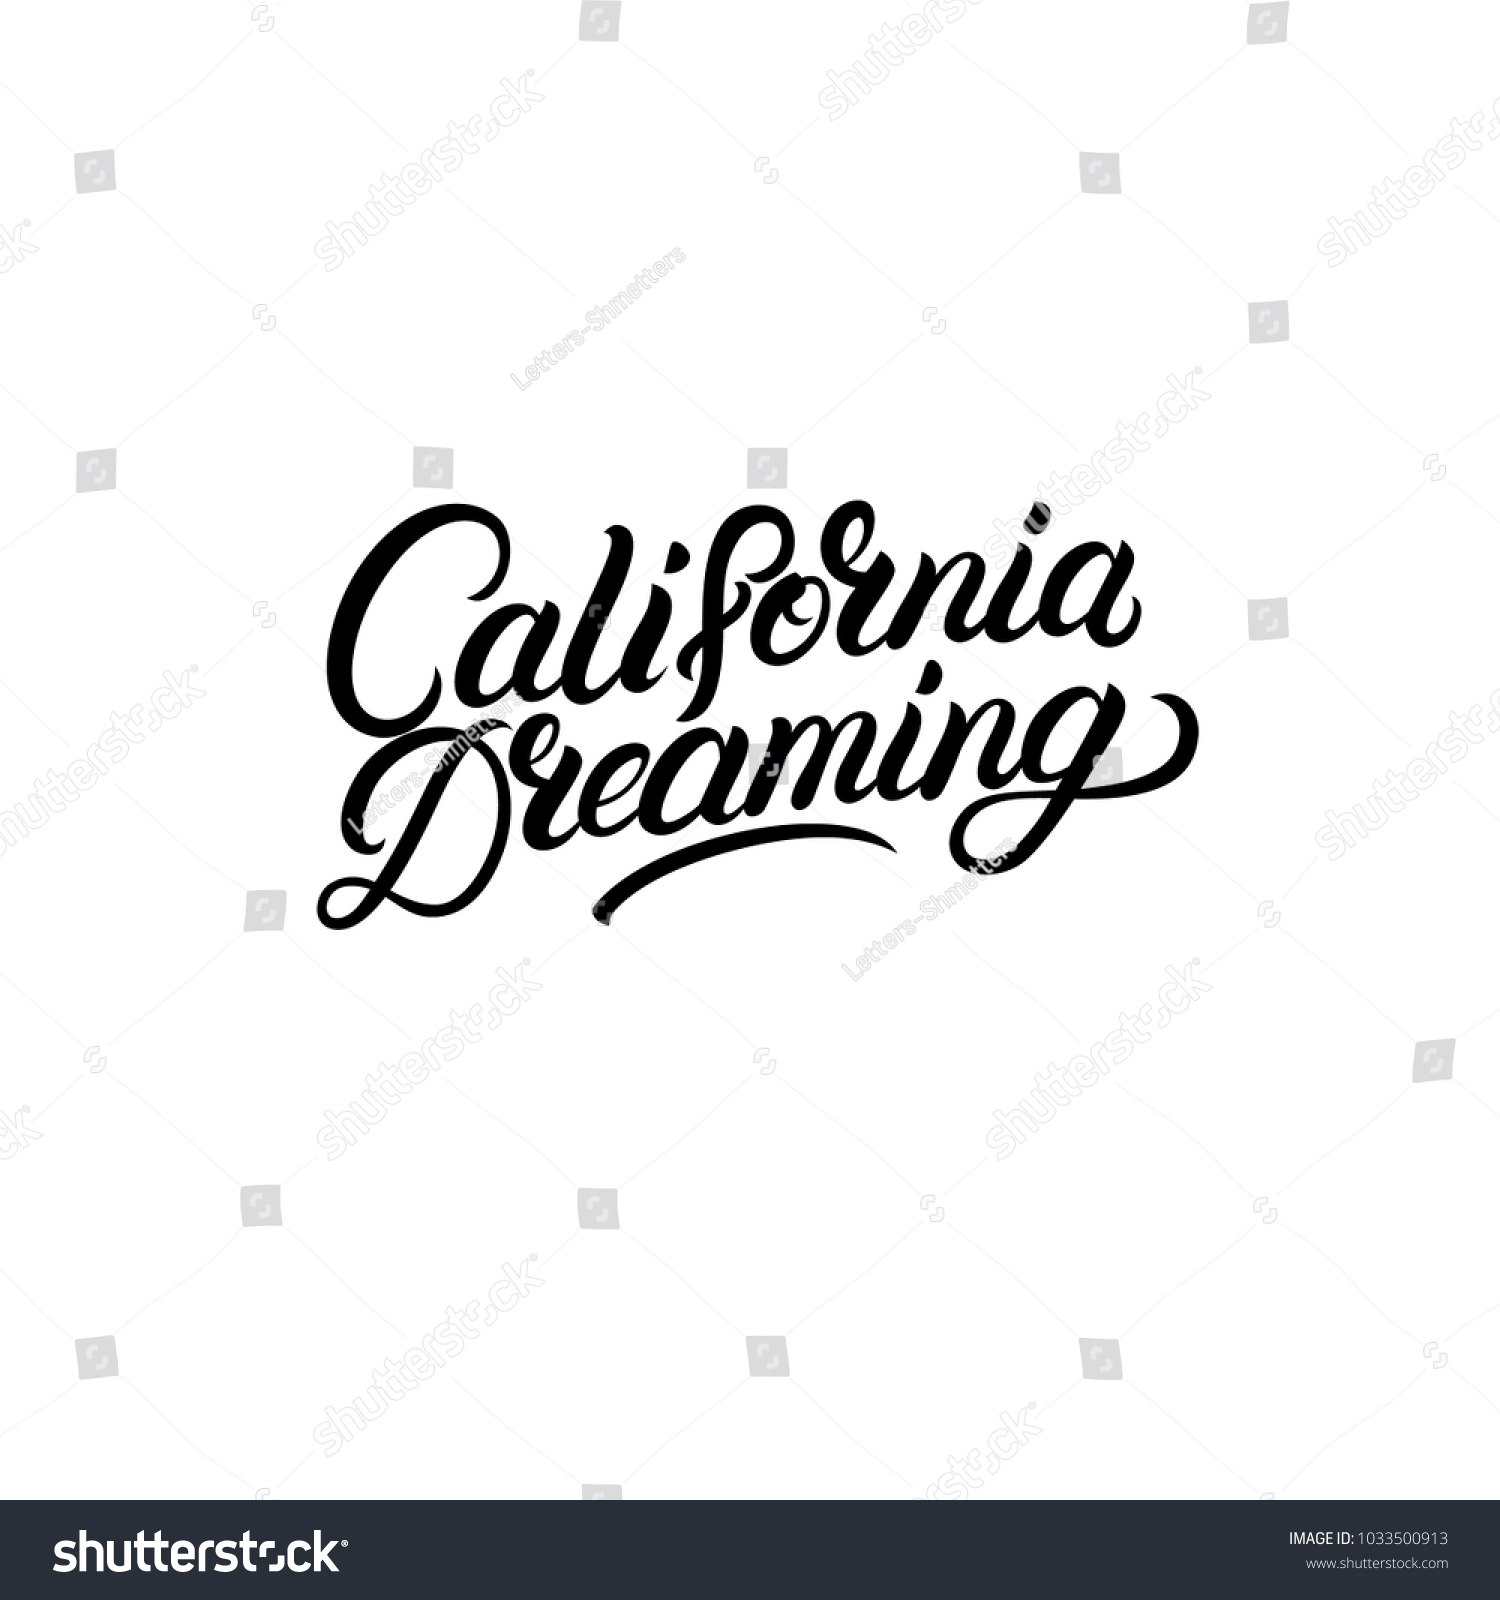 california dreaming hand written lettering text stock vector 2018